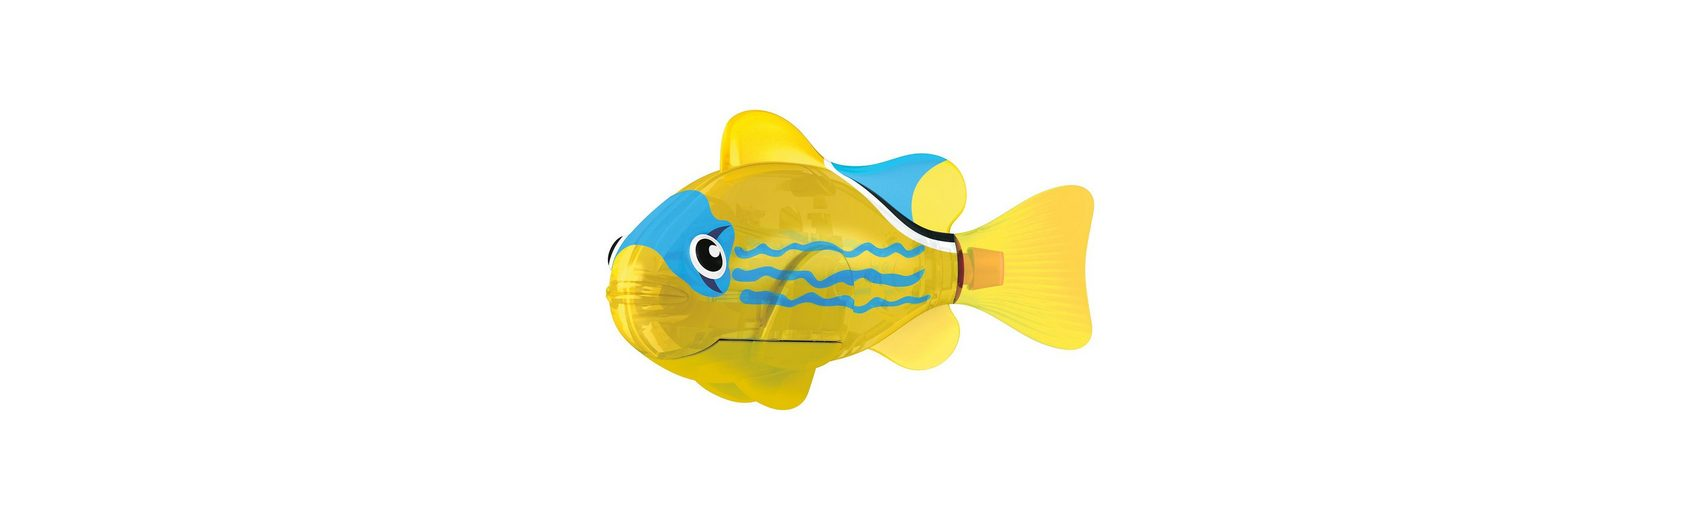 Goliath Robo Fish LED Yellow Lantern